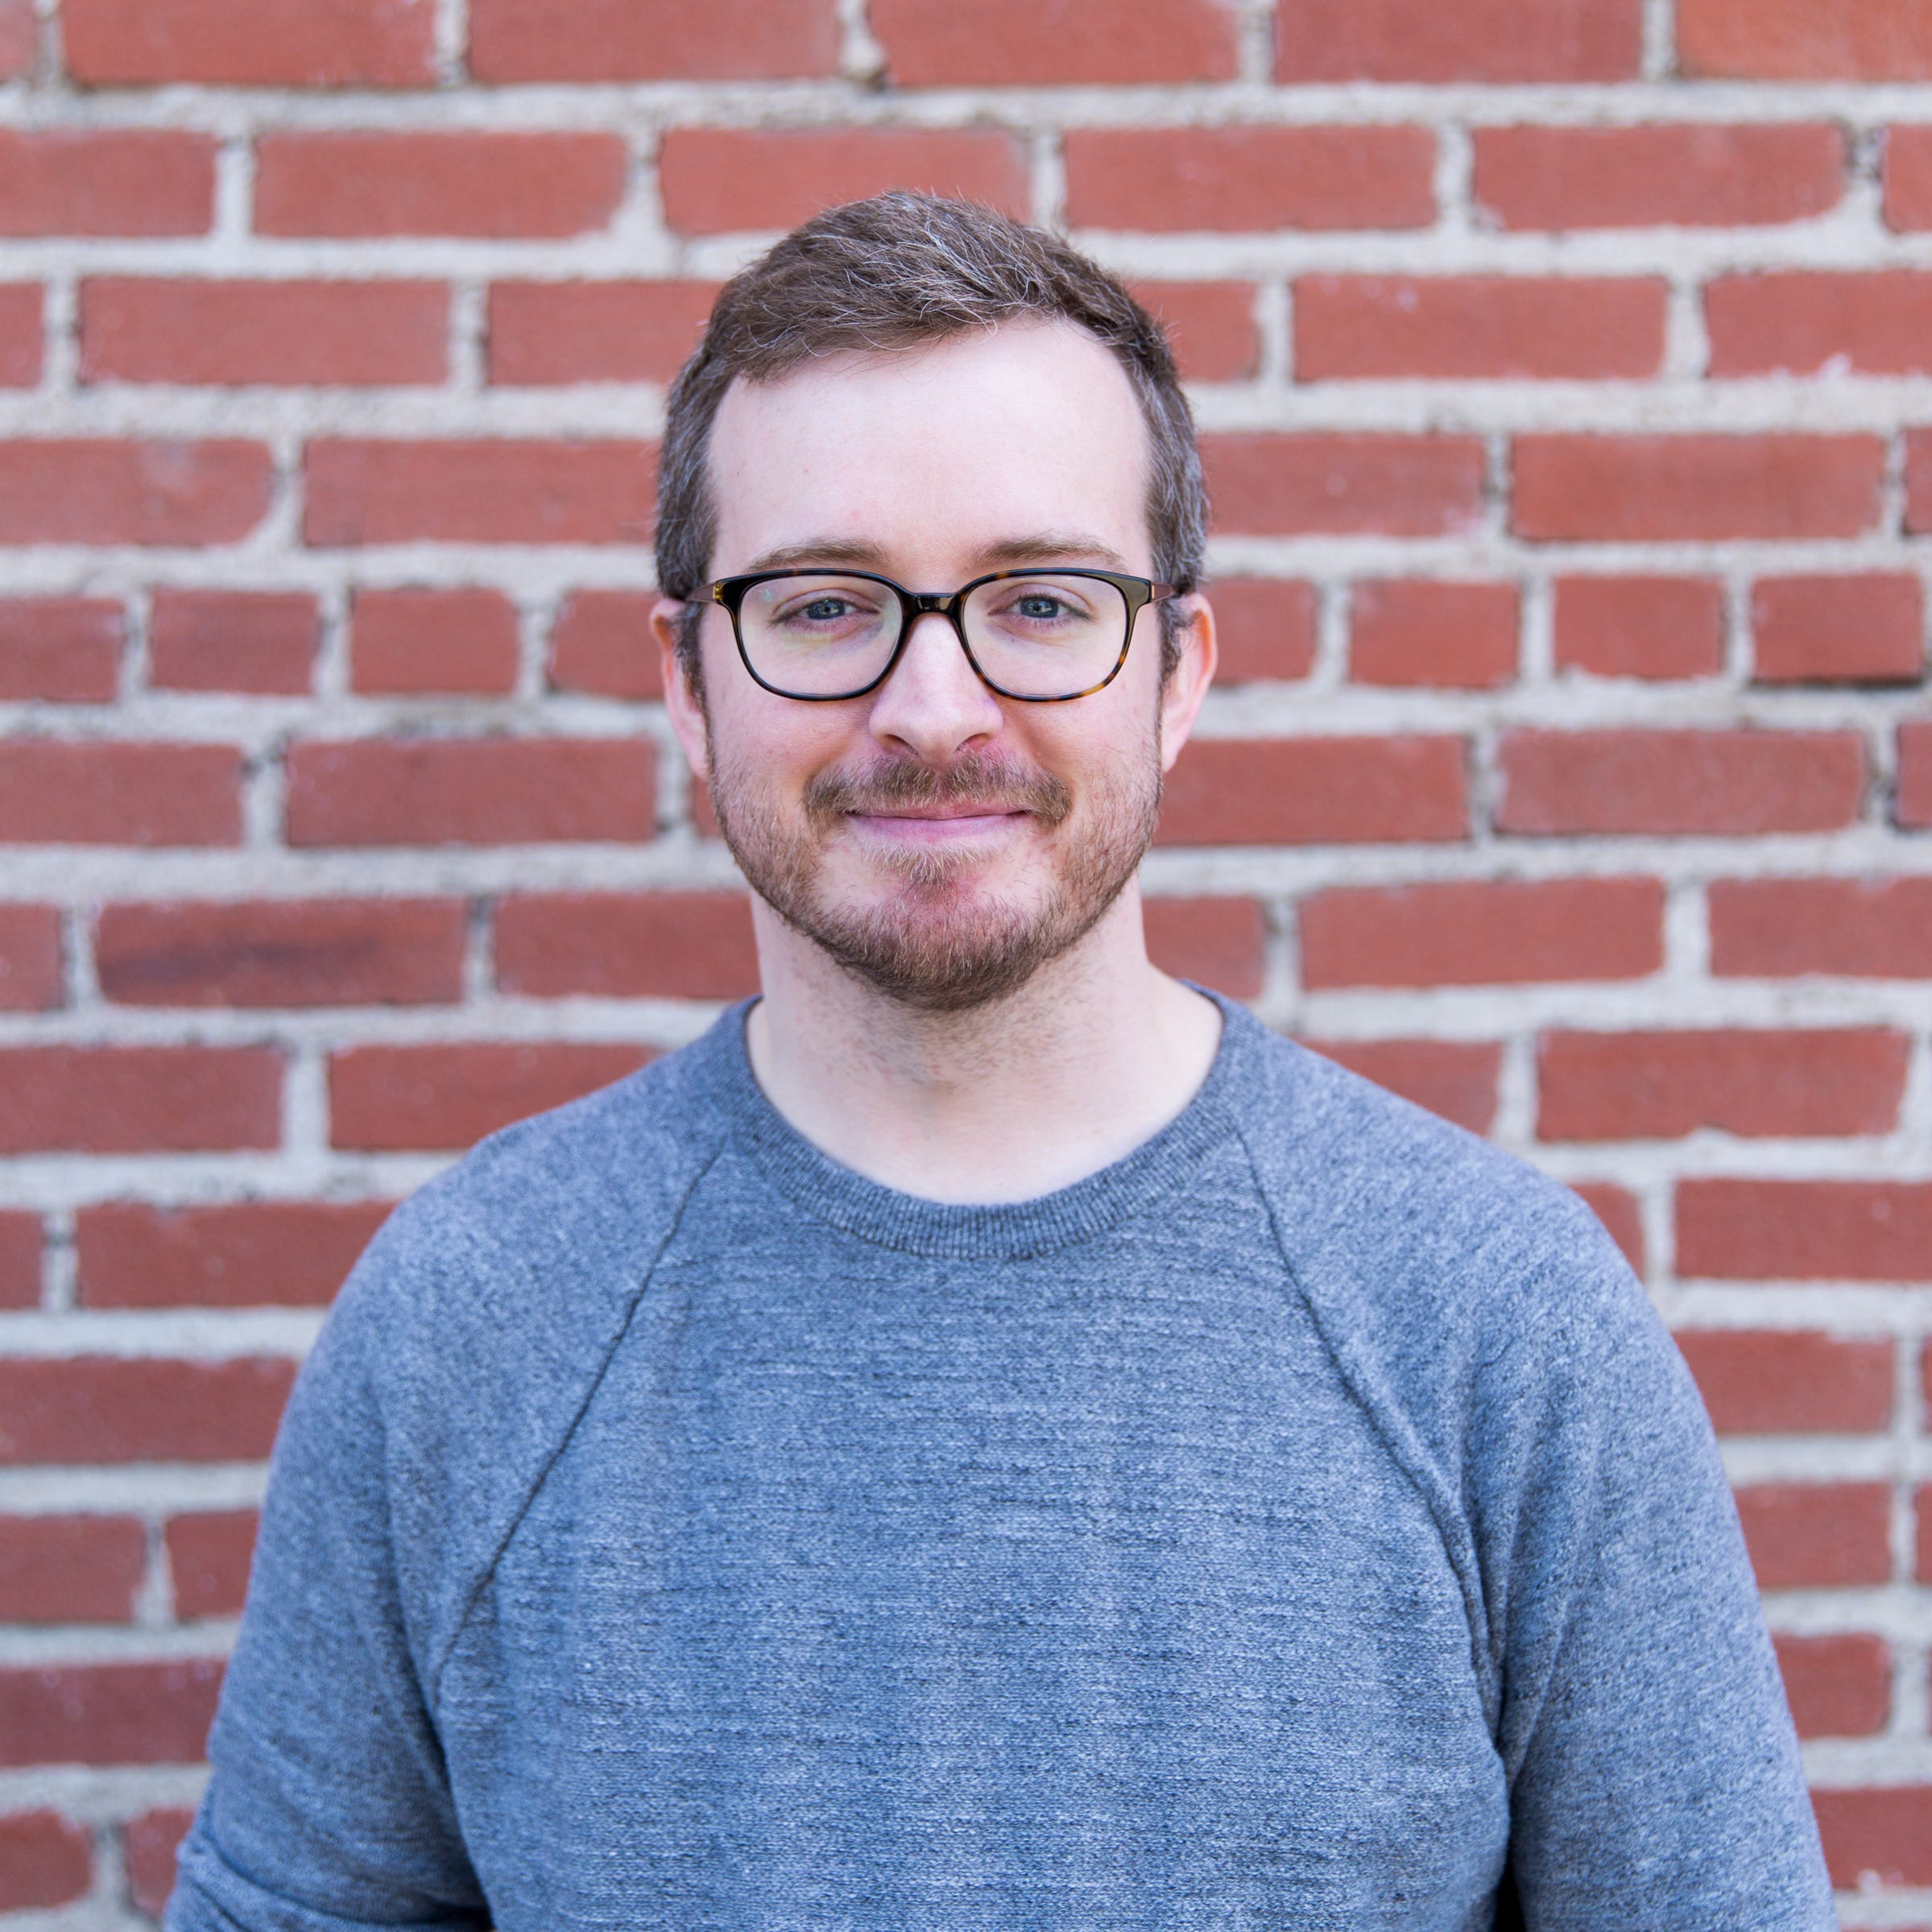 Comedy podcaster Griffin McElroy going live on stage at Ruby Diamond